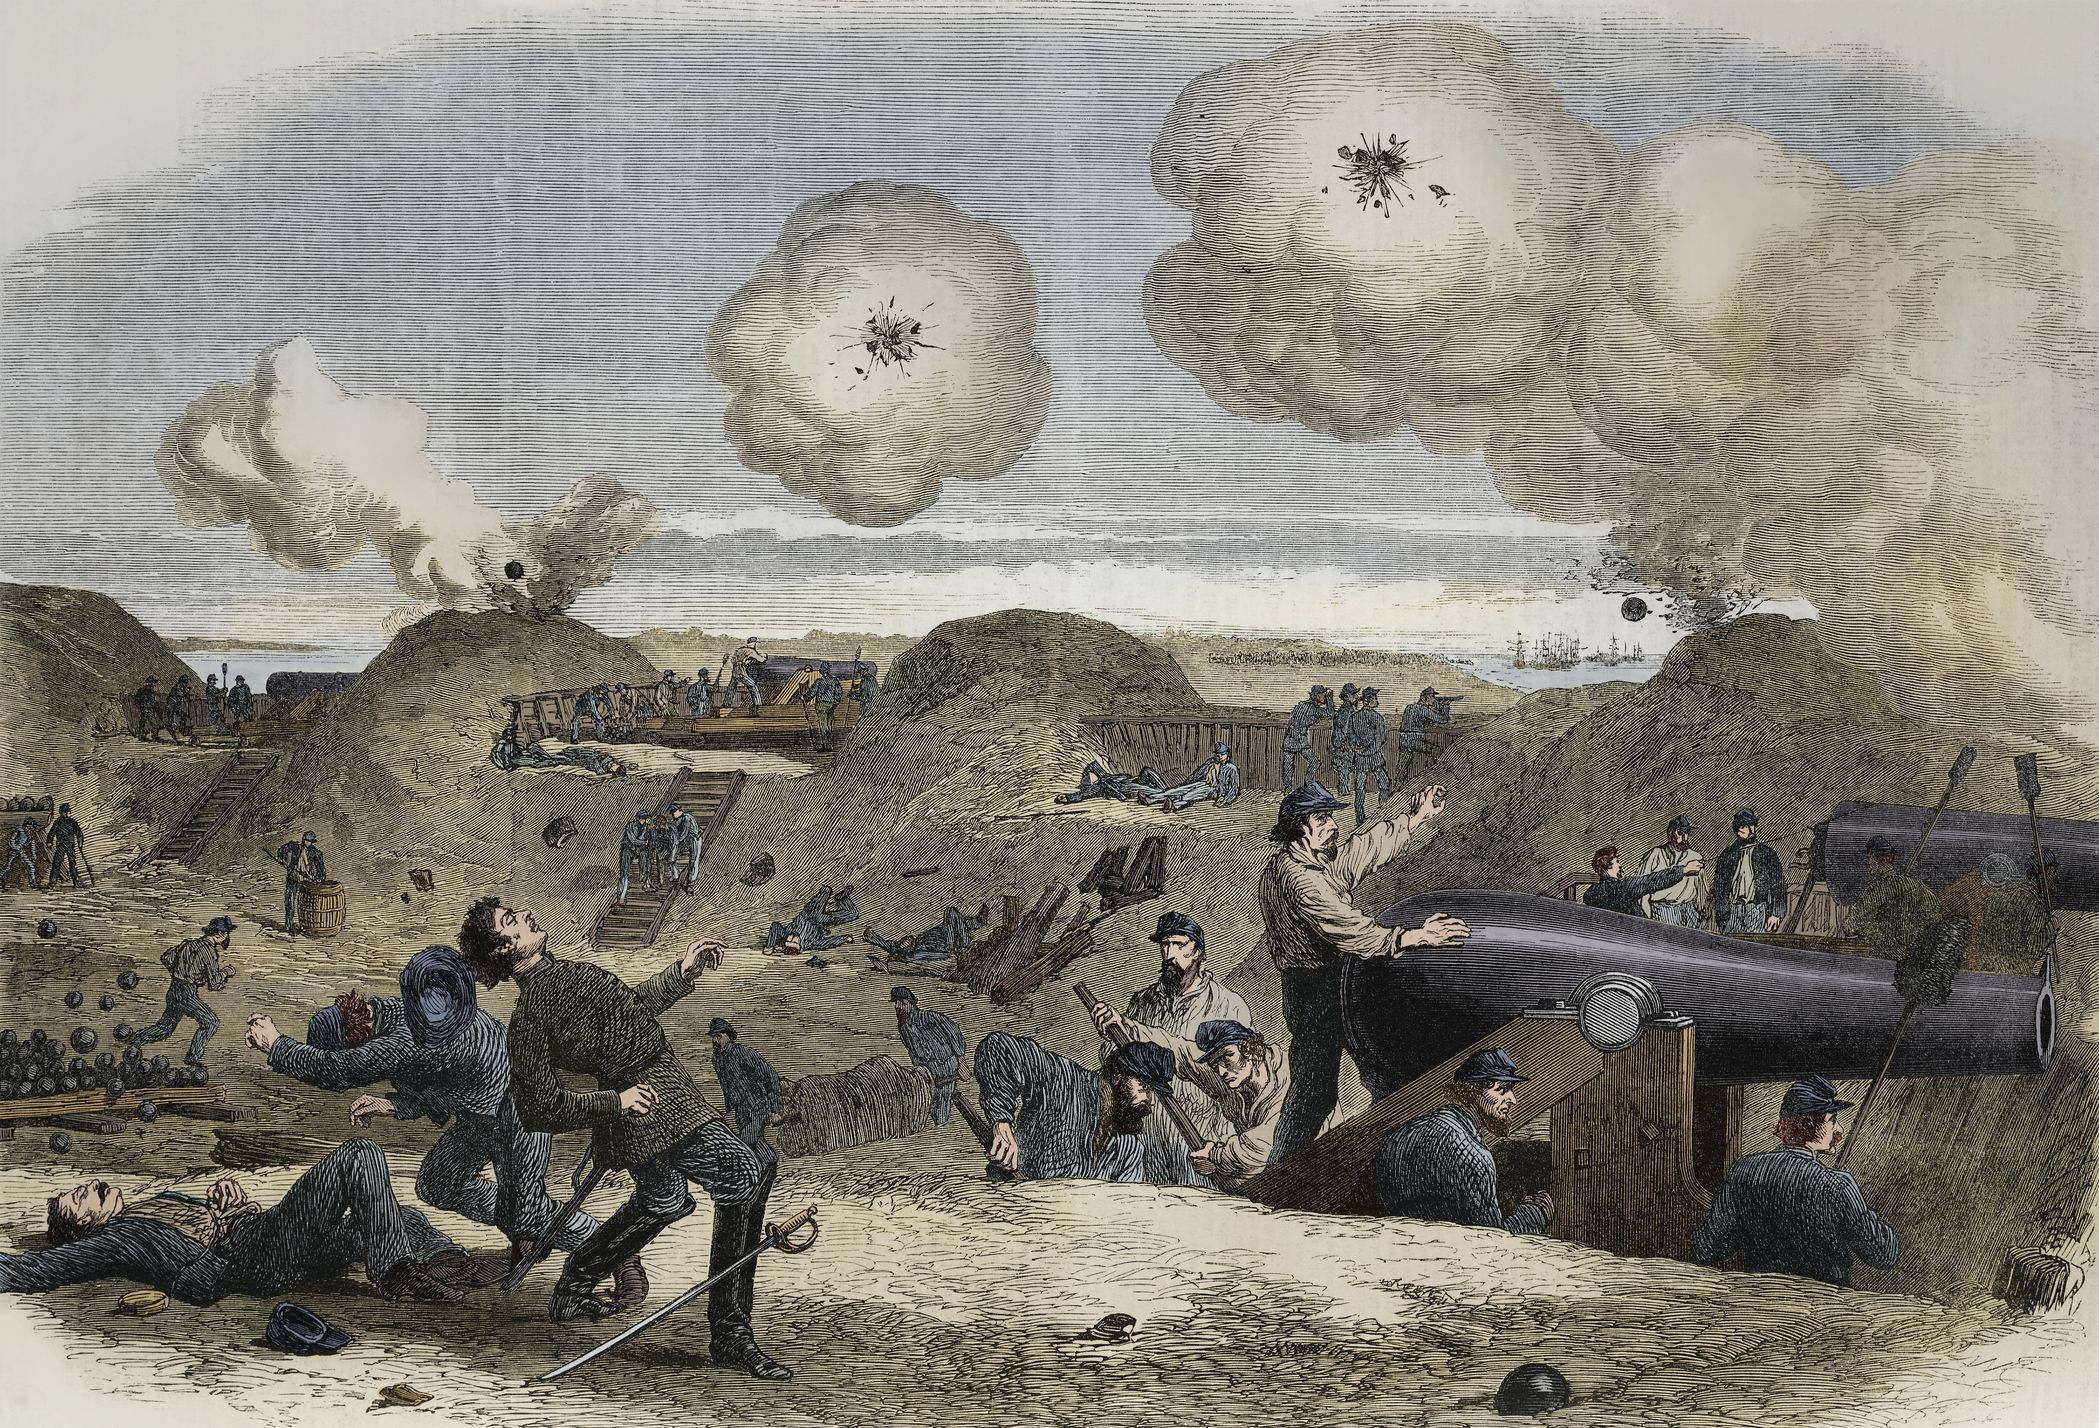 Bombardment of Fort Fisher, near Wilmington, New York, 1865